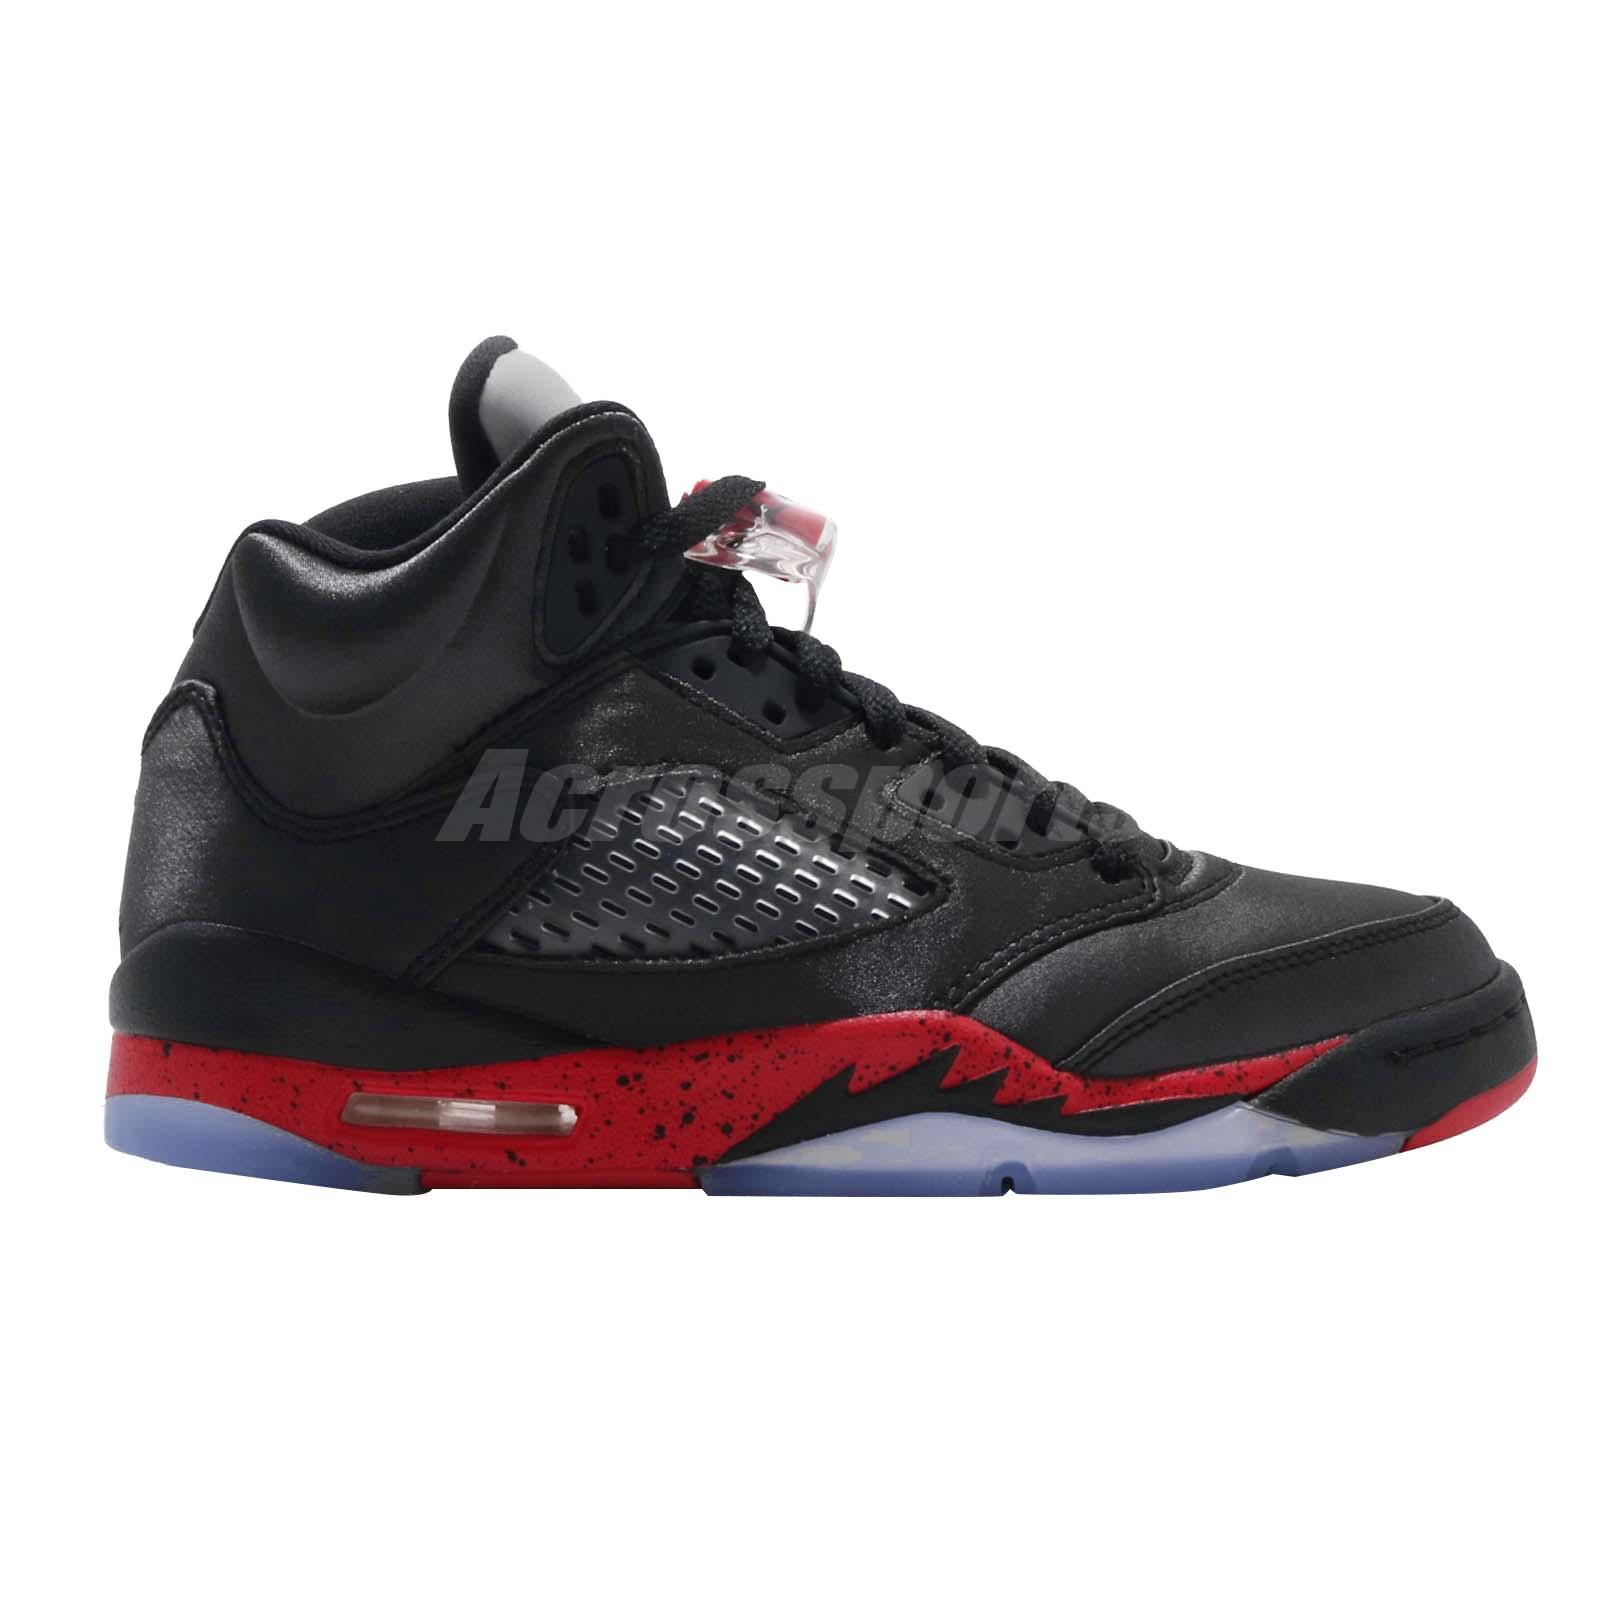 Athletic Shoes Latest Collection Of Nike Air Jordan 5 Retro Bg Gs Satin Black Red Bred V Aj5 Youth Kids 440888-006